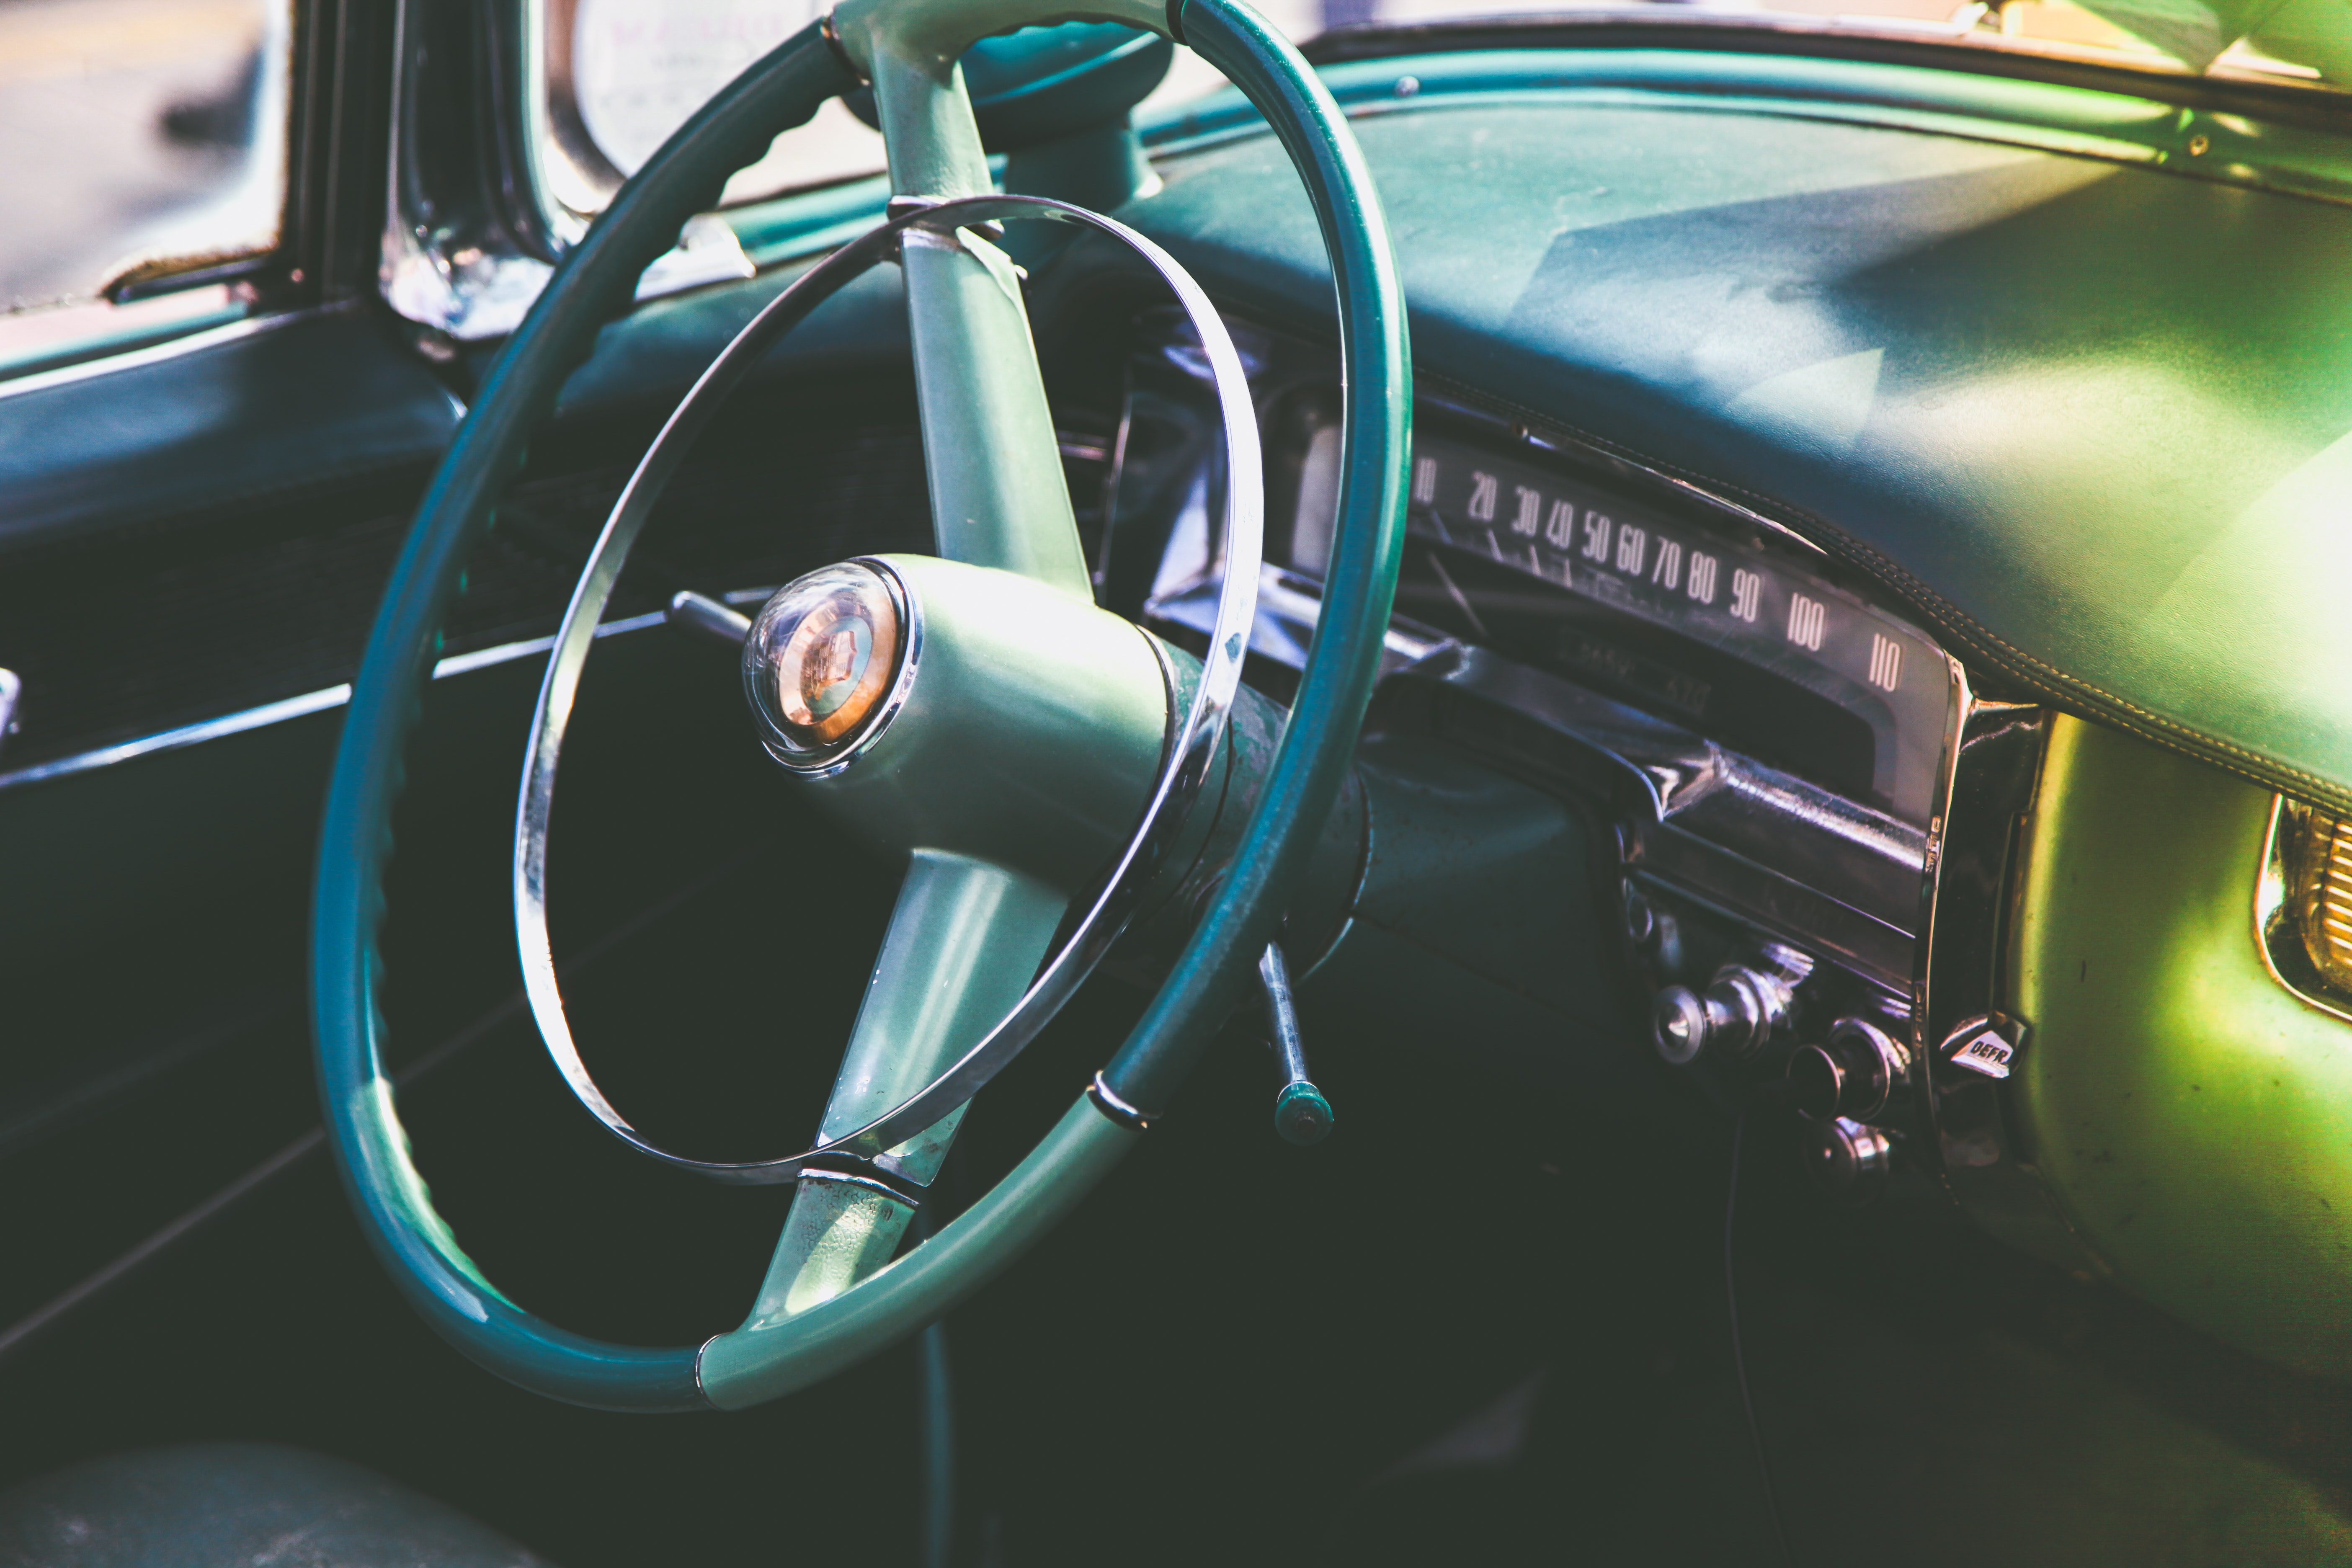 A close-up shot of the steering wheel and dashboard of a classic car in London.